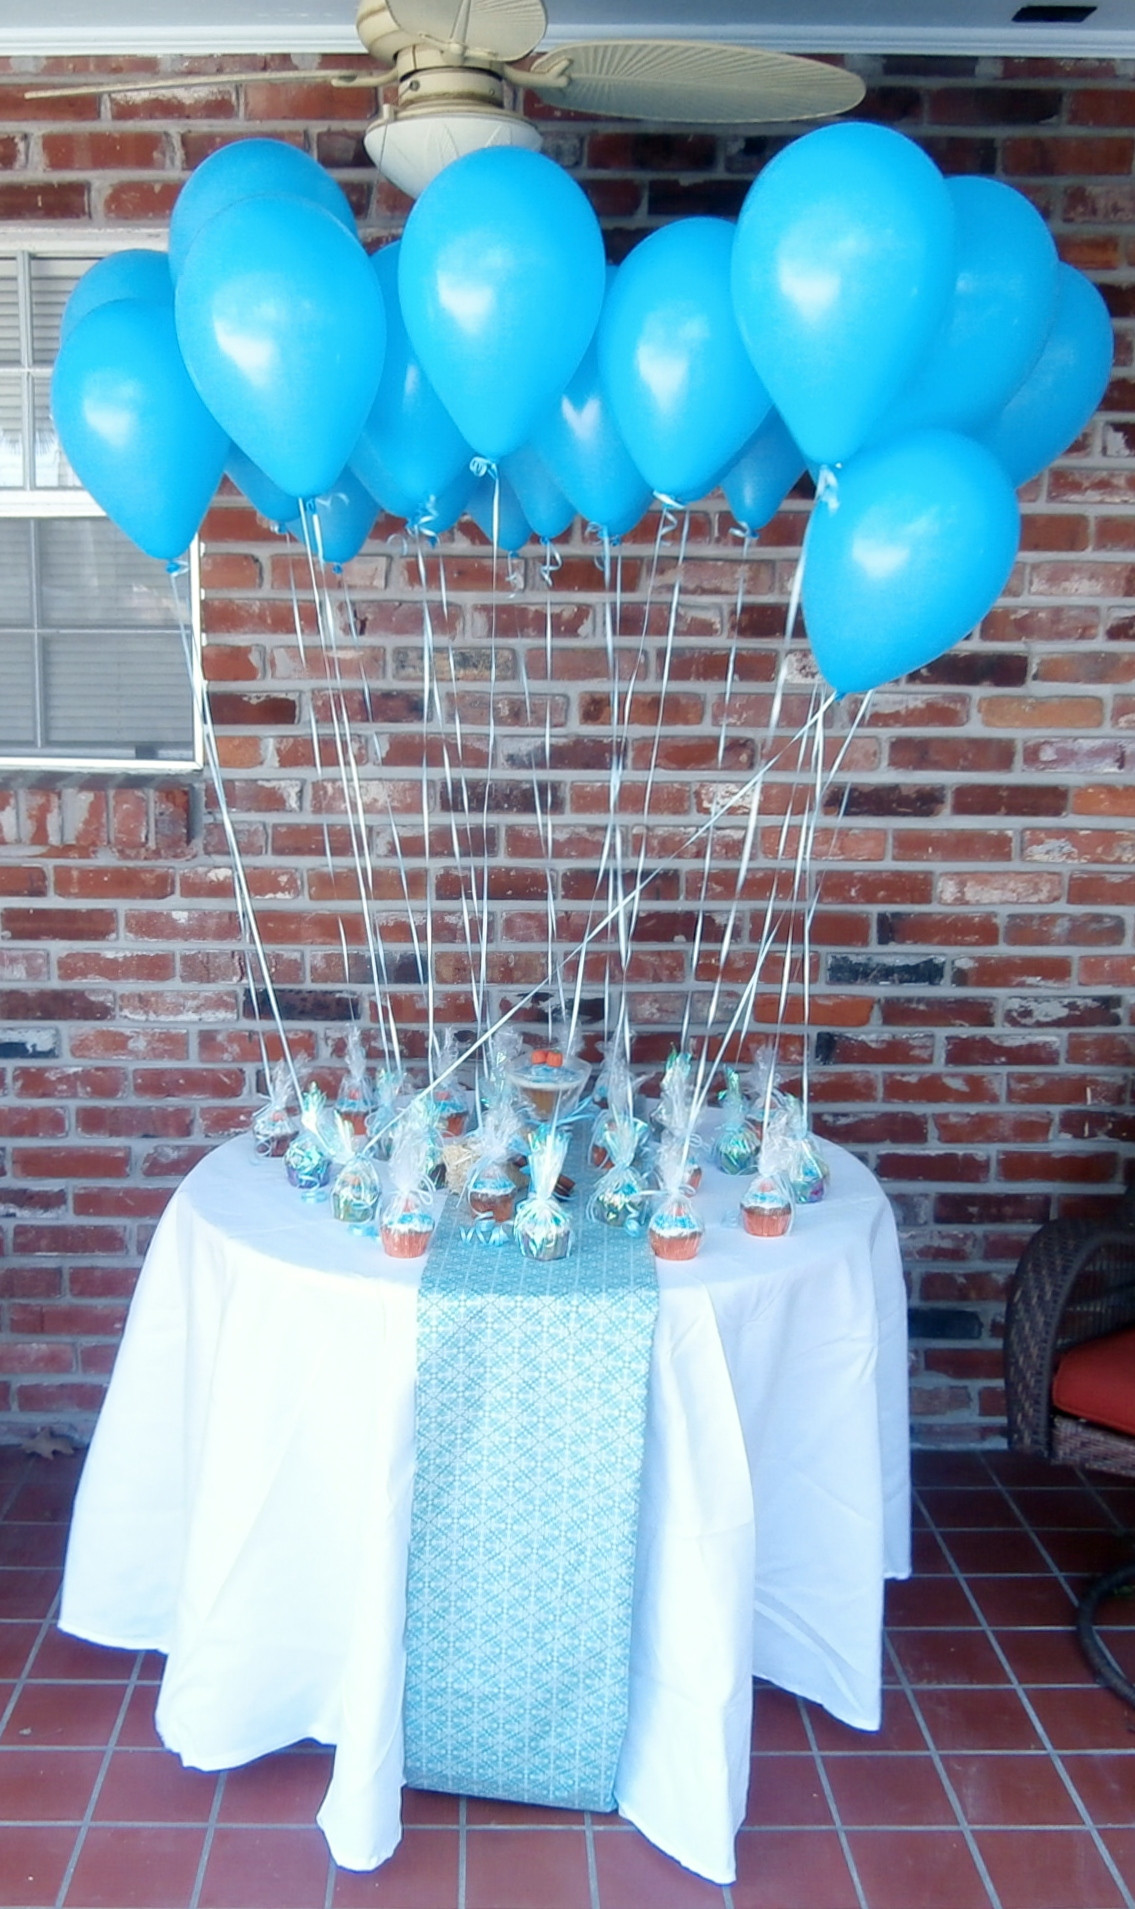 Best ideas about Baby Shower Gift Ideas For Games . Save or Pin baby shower games Now.